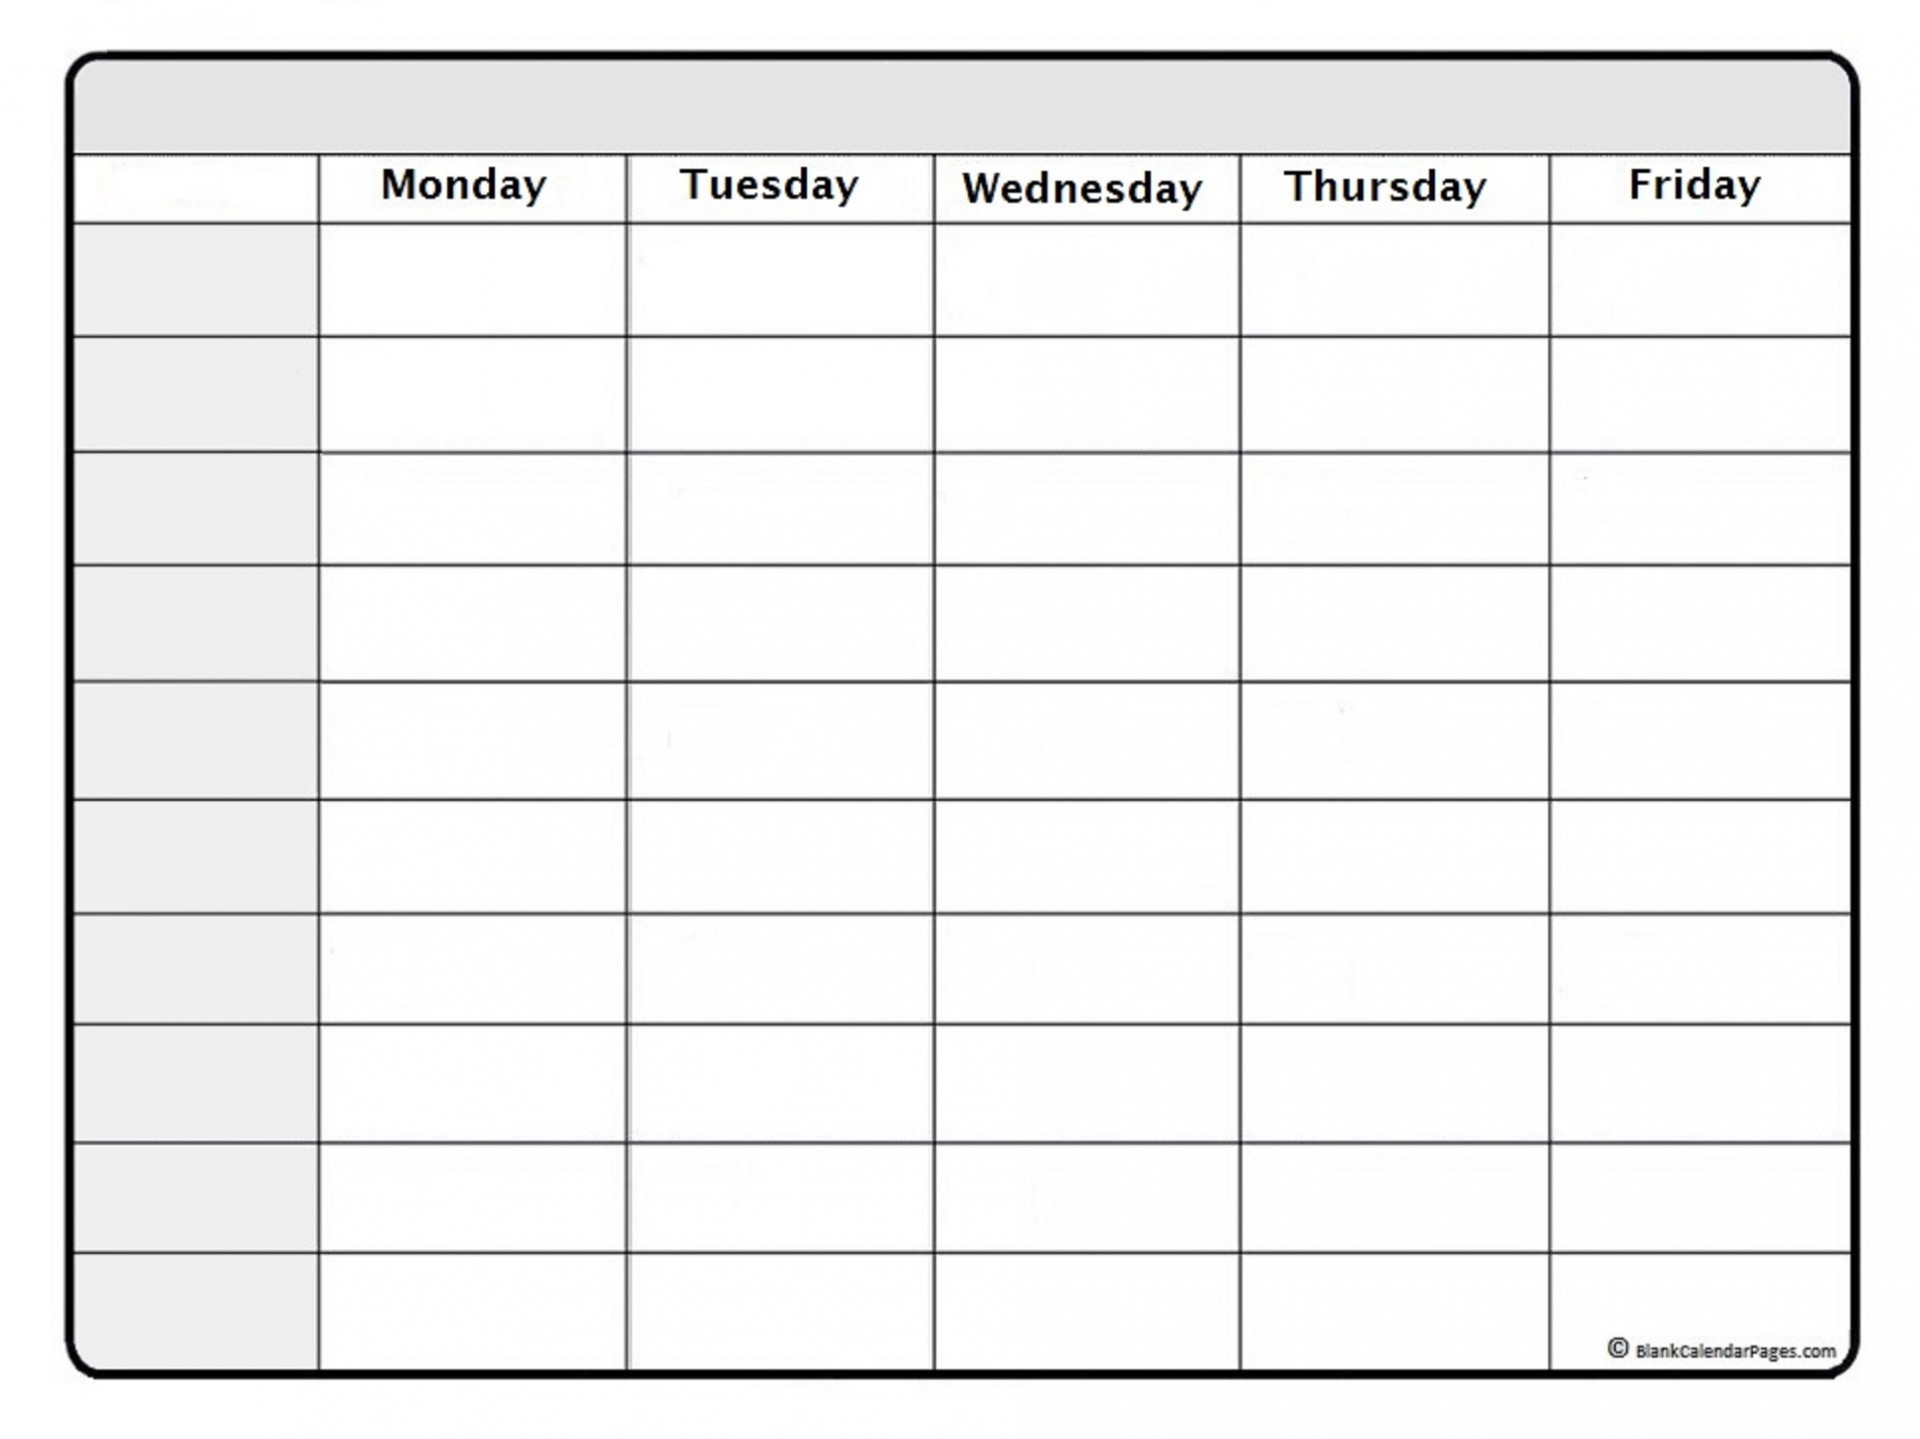 012 Template Ideas Weekly Class Schedule Blank Stupendous pertaining to Blank Weekly Calender